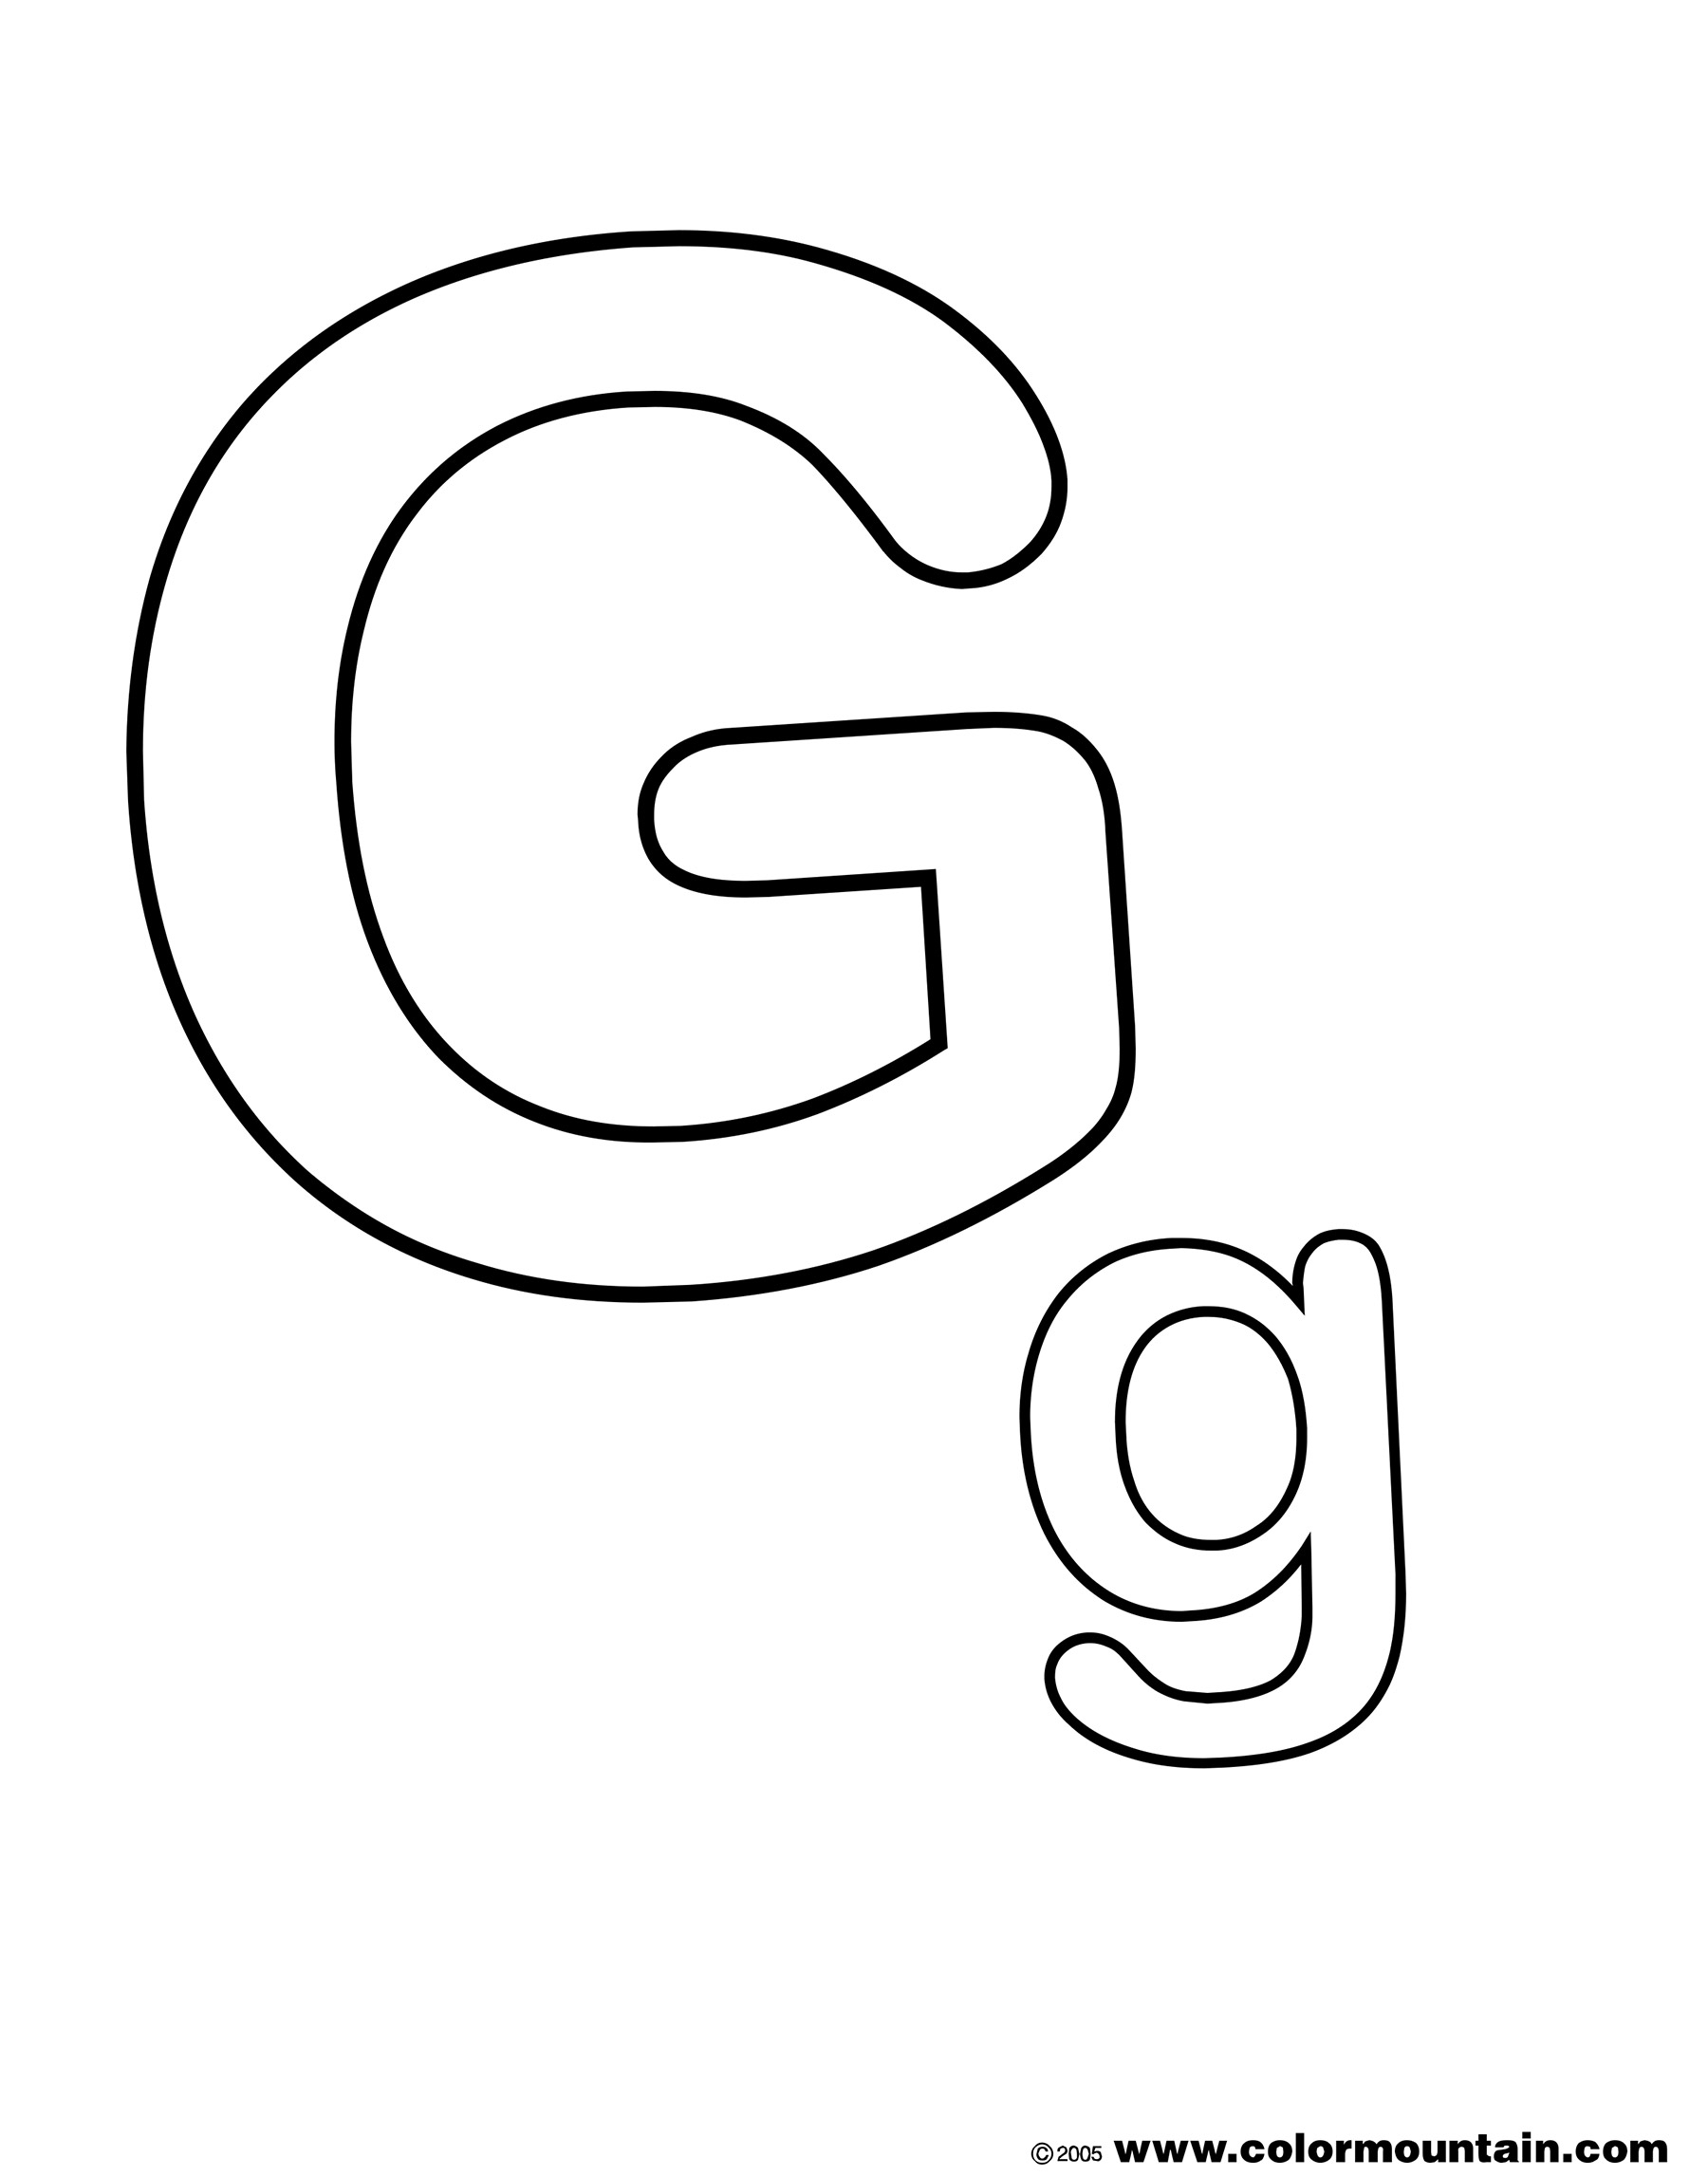 Letter G Coloring Pages The Letter G Coloring Page Create A Printout Or Activity In Pages